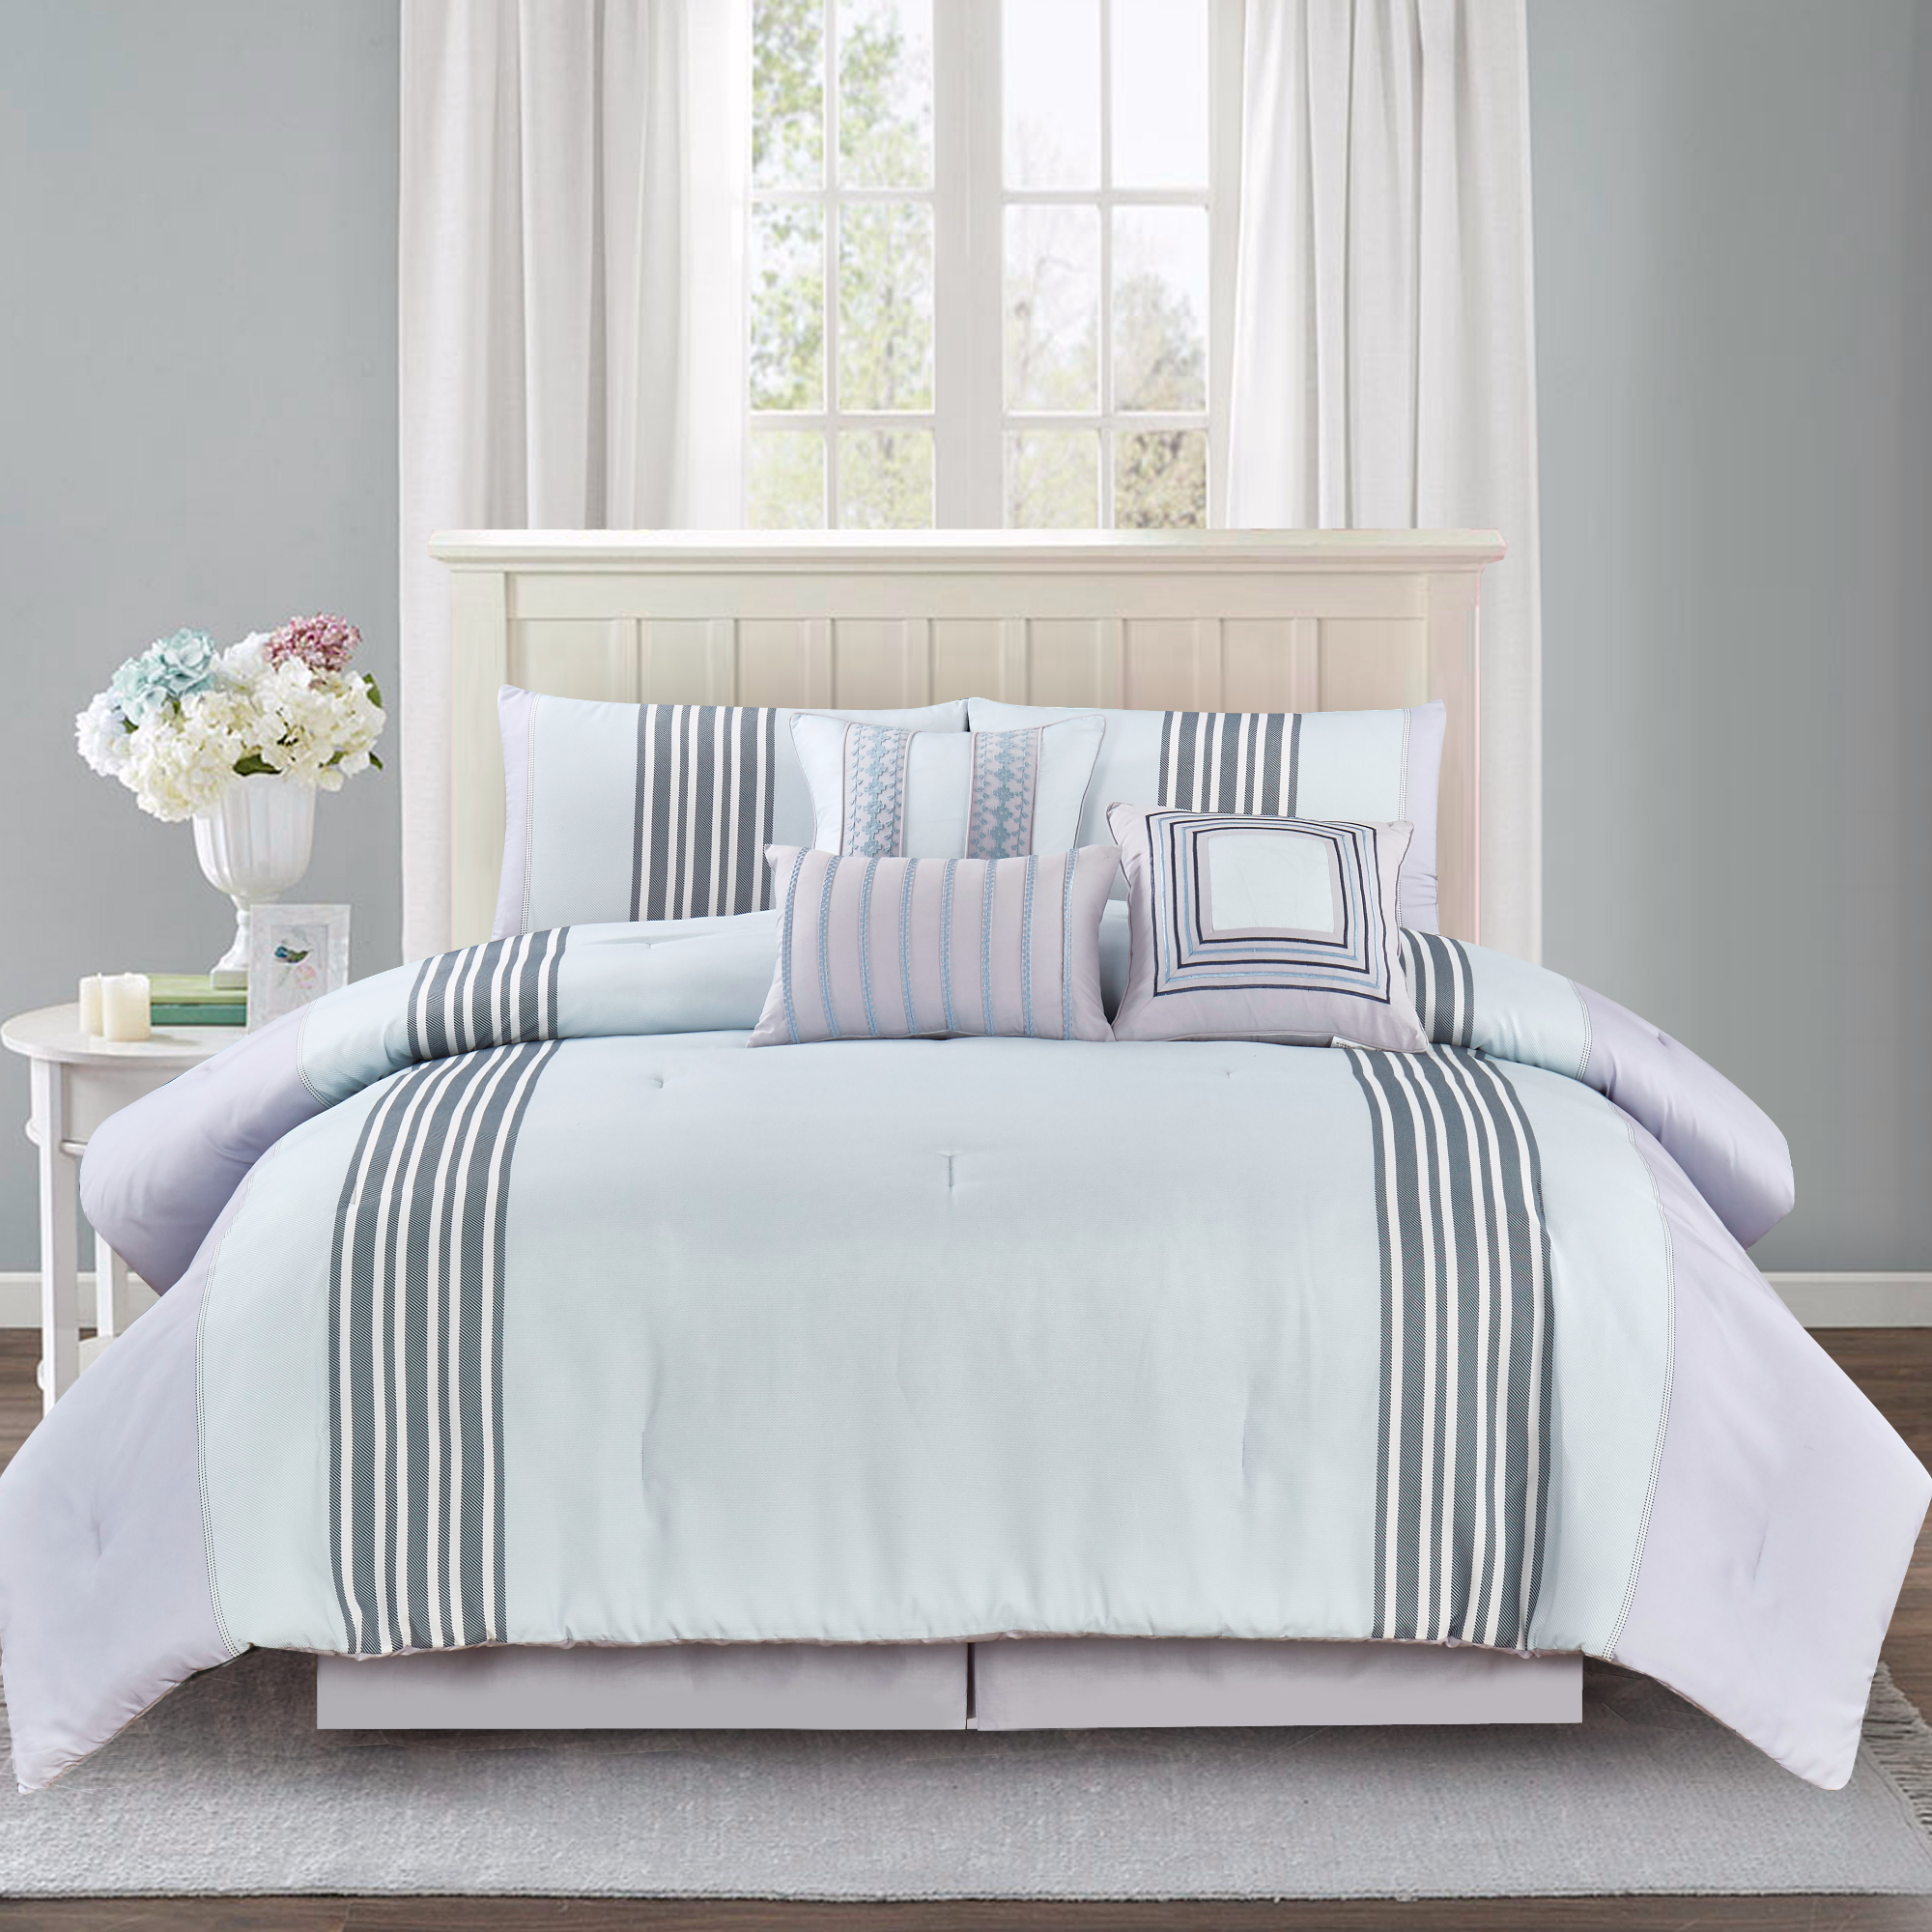 set free today circle pillows product bedroom down bedding bath shipping of cotton overstock